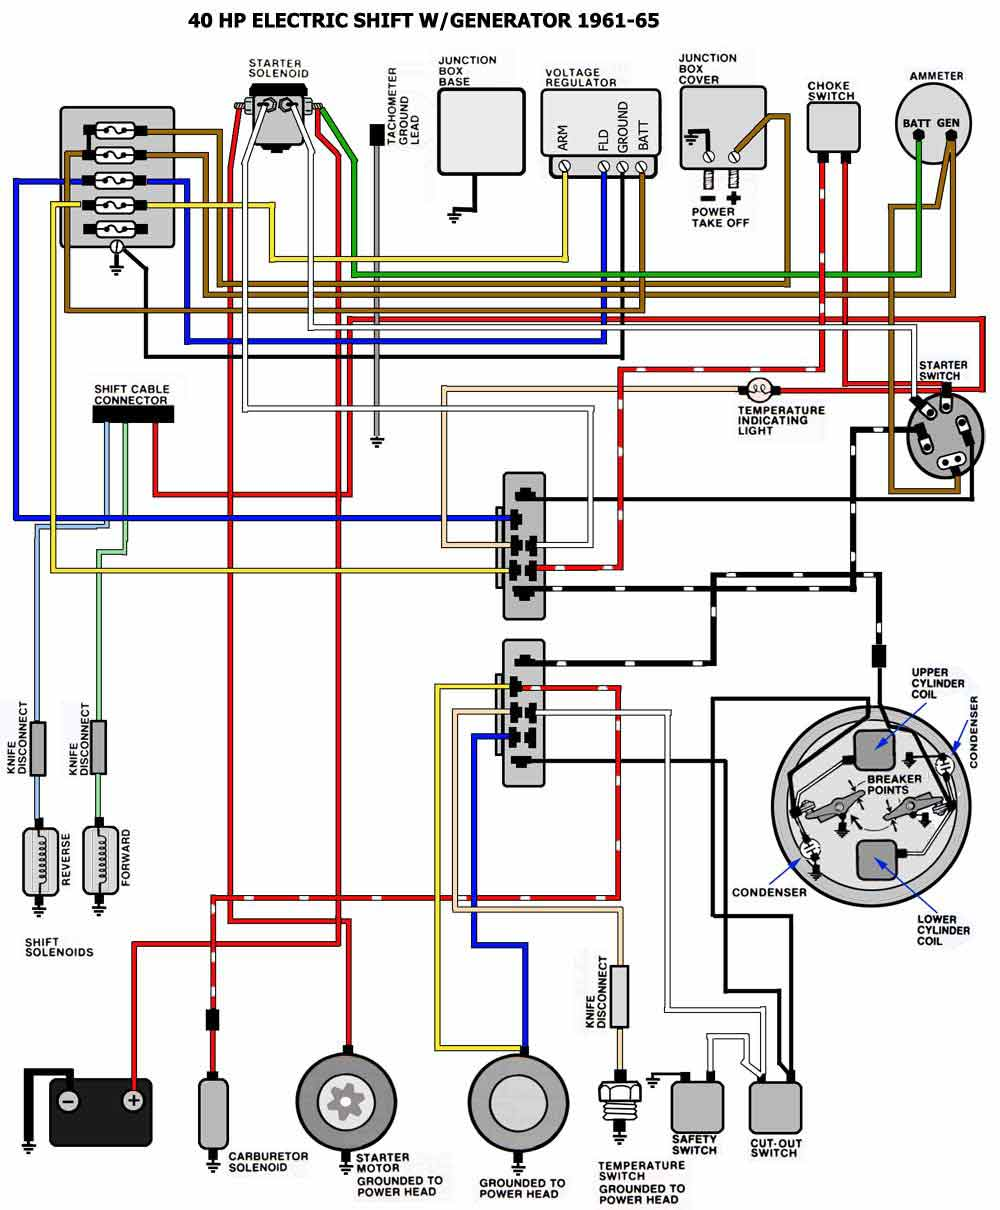 medium resolution of 25 hp evinrude wiring diagram wiring diagram for you 25 hp johnson wiring diagram 1978 johnson 25 outboard wiring diagram